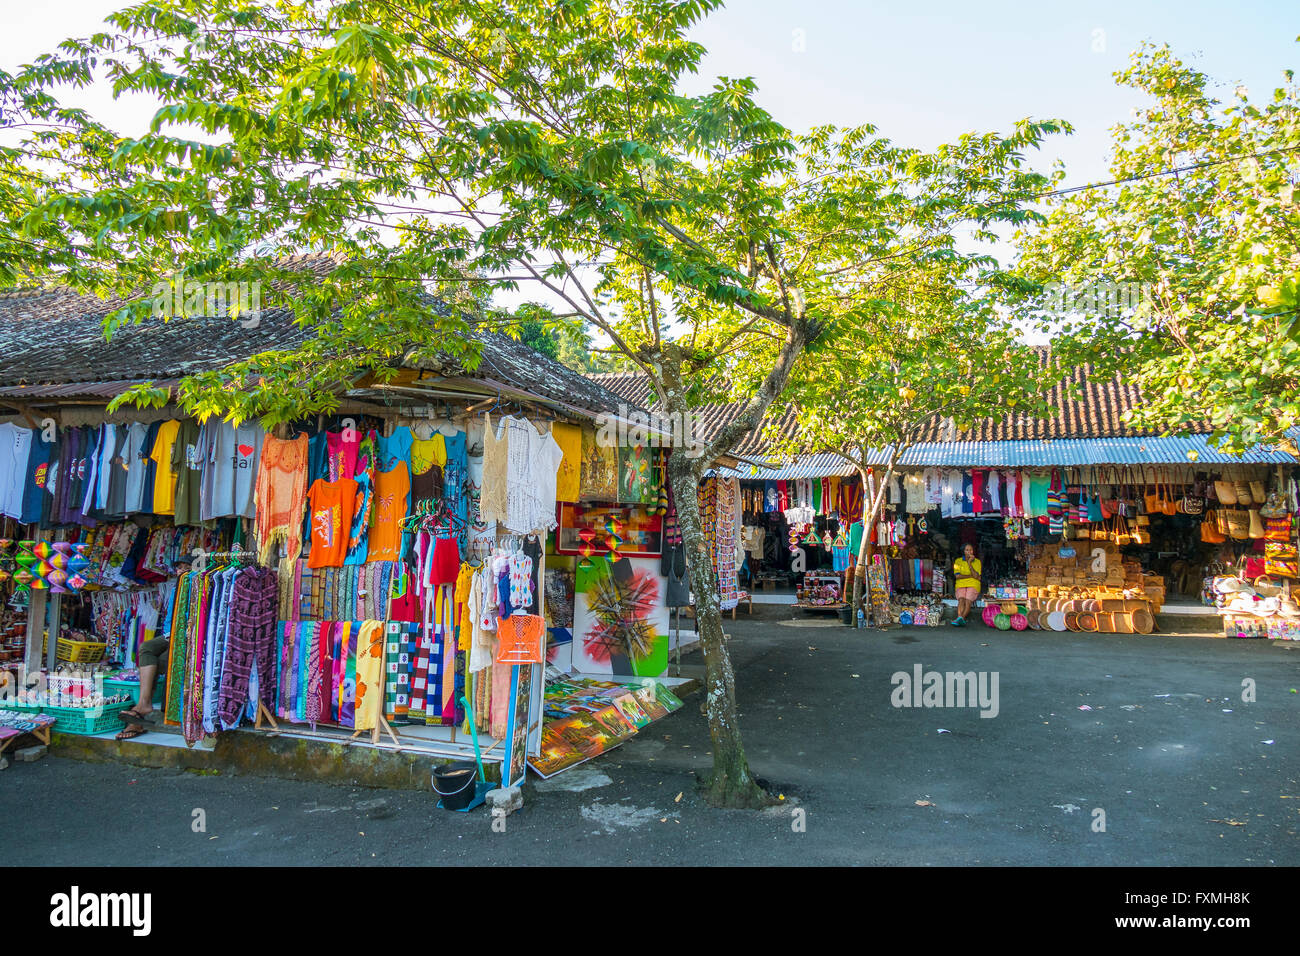 Pura Tirta Empul Market, Ubud, Bali, Indonesia Stock Photo